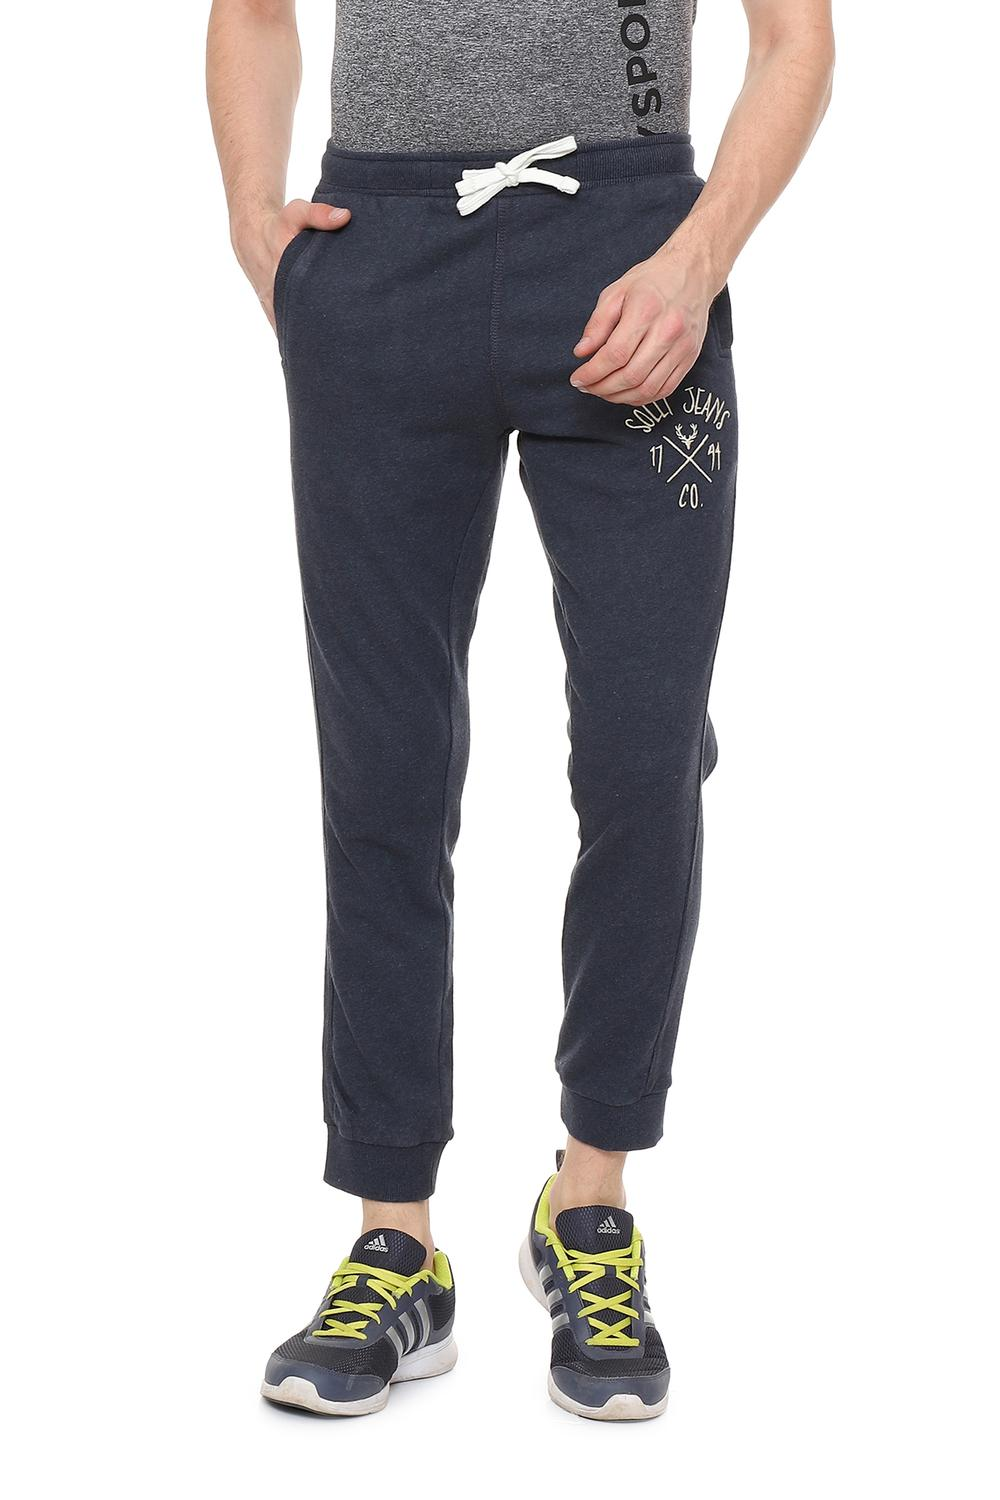 e2bb6a0457 Solly Jeans Co Active Wear, Allen Solly Blue Track Pants for Men at  Allensolly.com